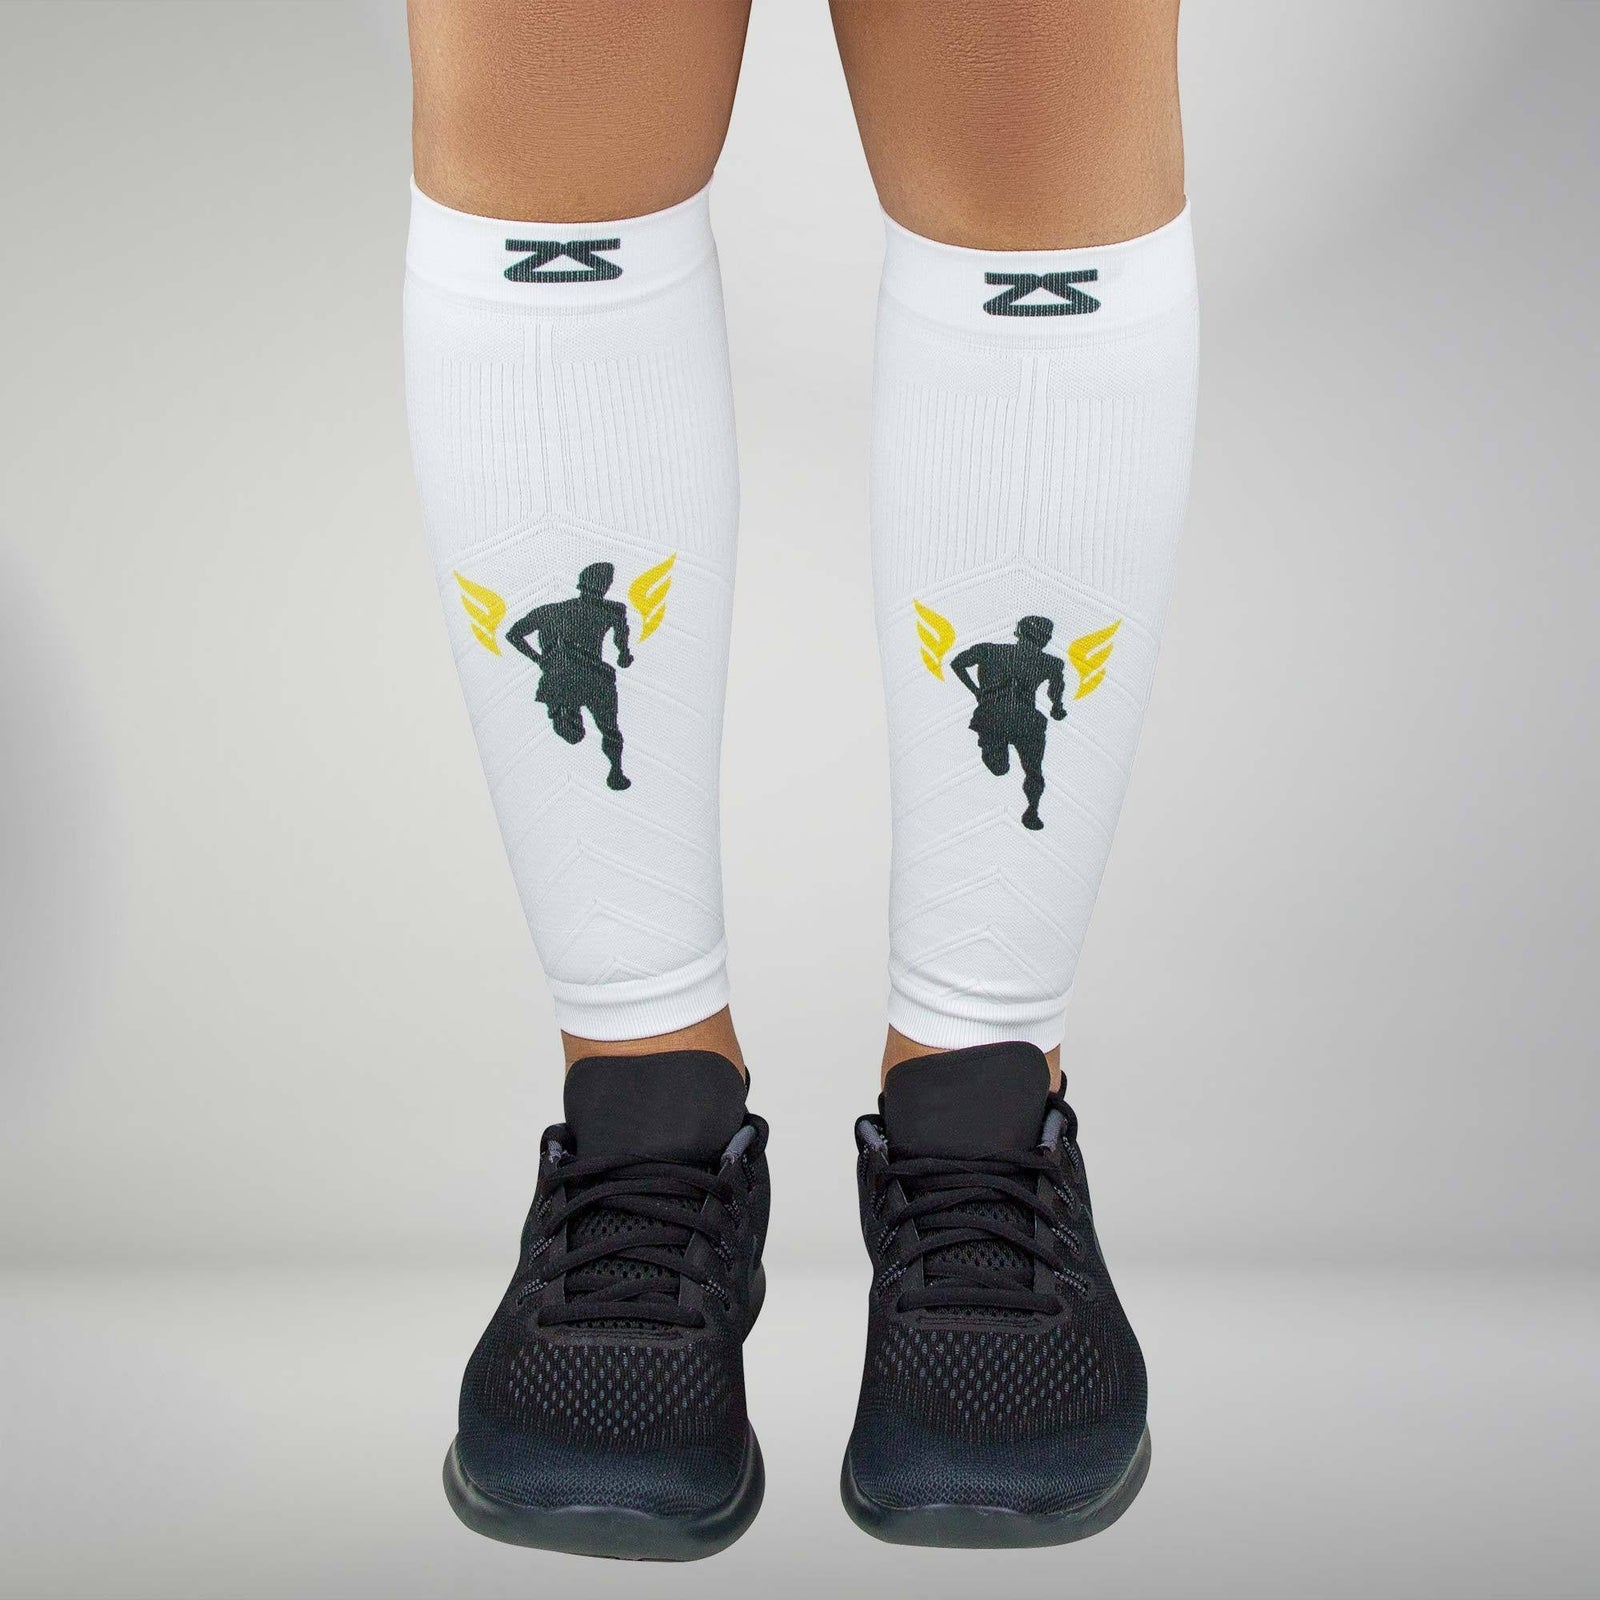 cd415ab2fa Zensah - Advanced Athletic Compression Sleeves and Apparel